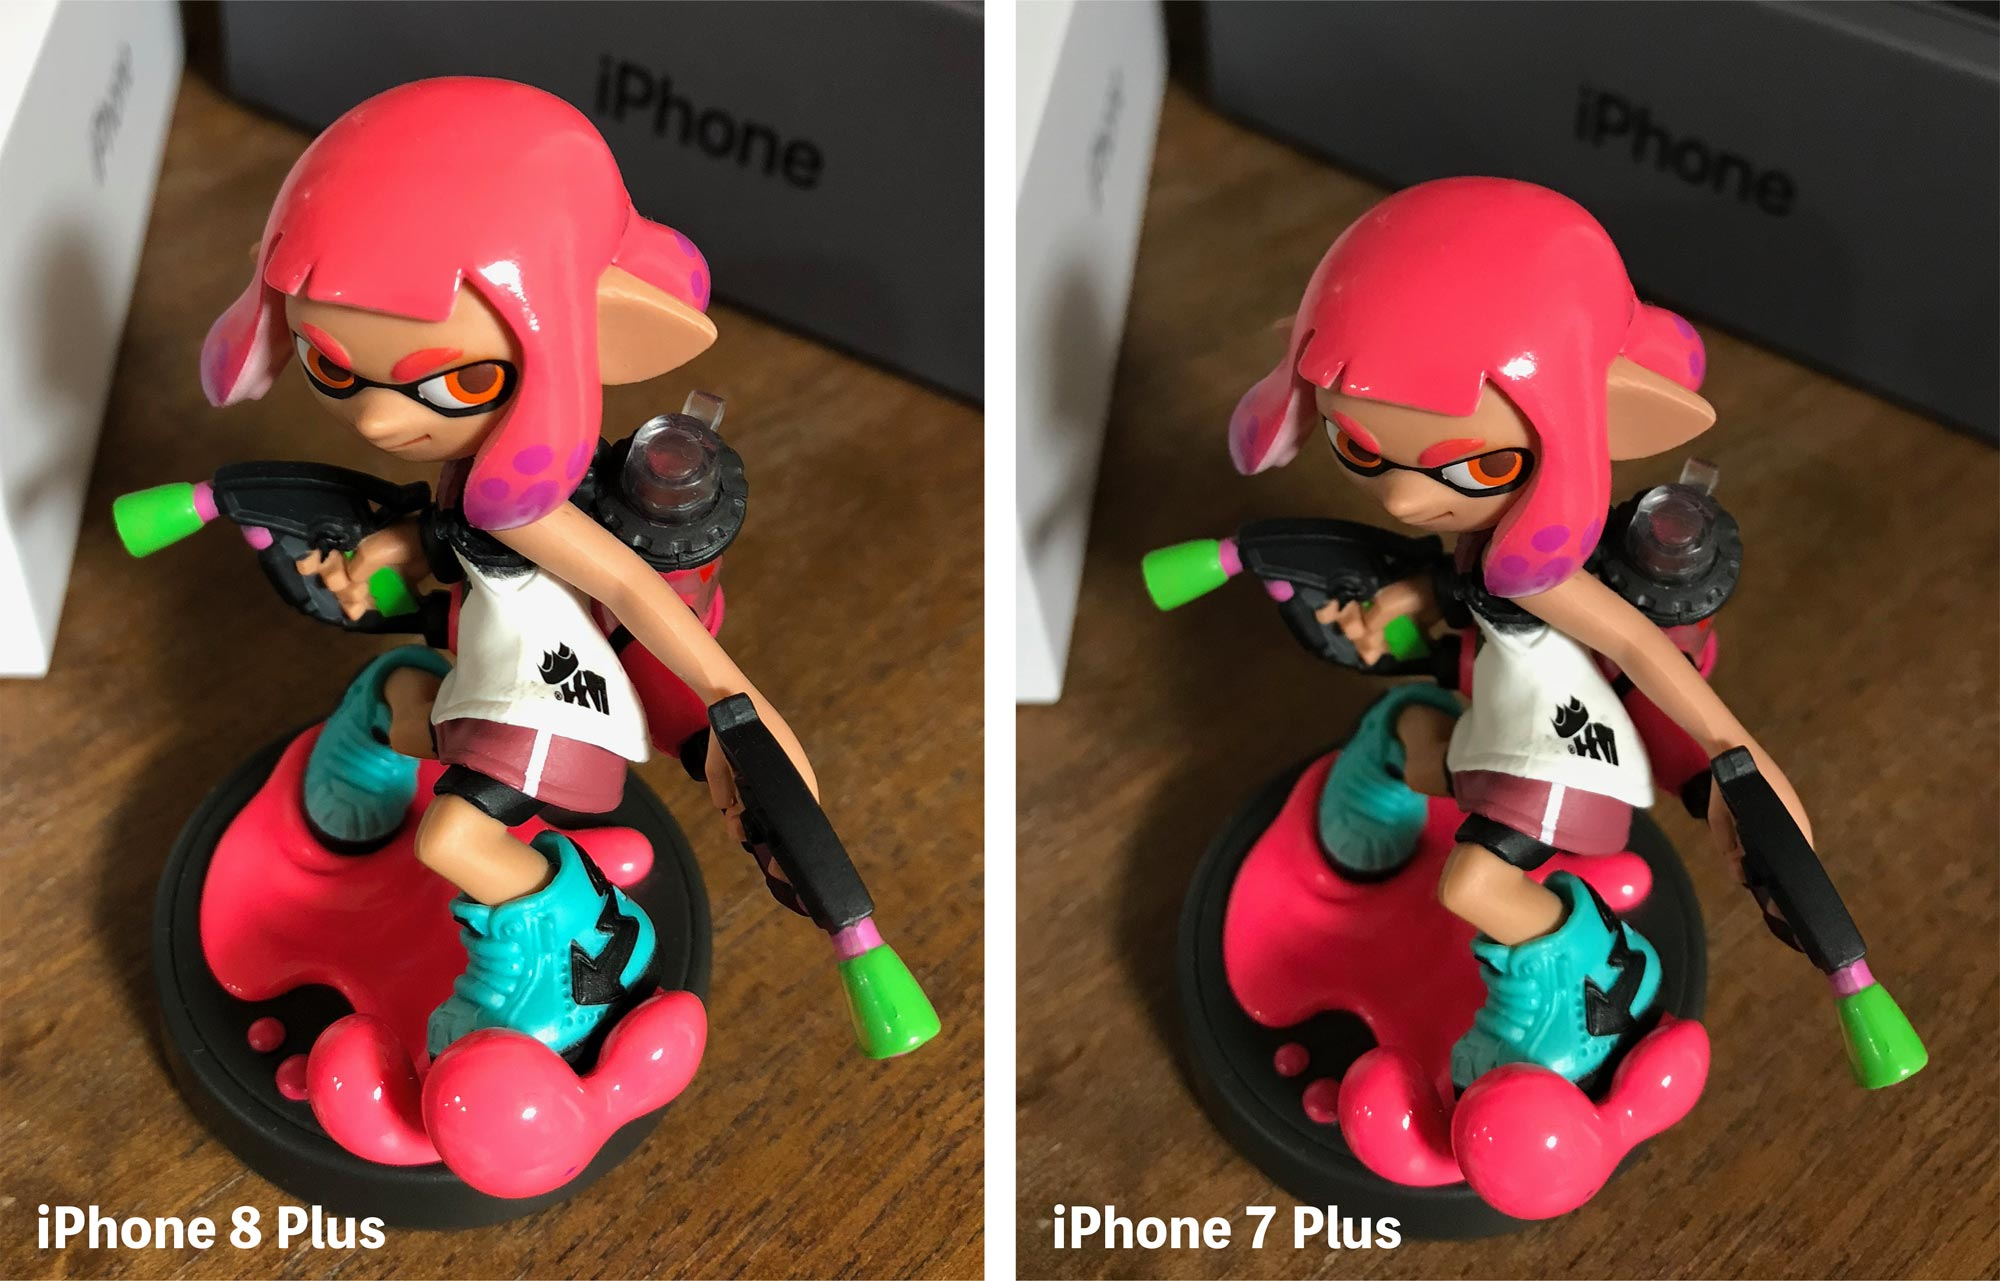 iPhone 8 Plus vs iPhone 7 Plus カメラ画質 1